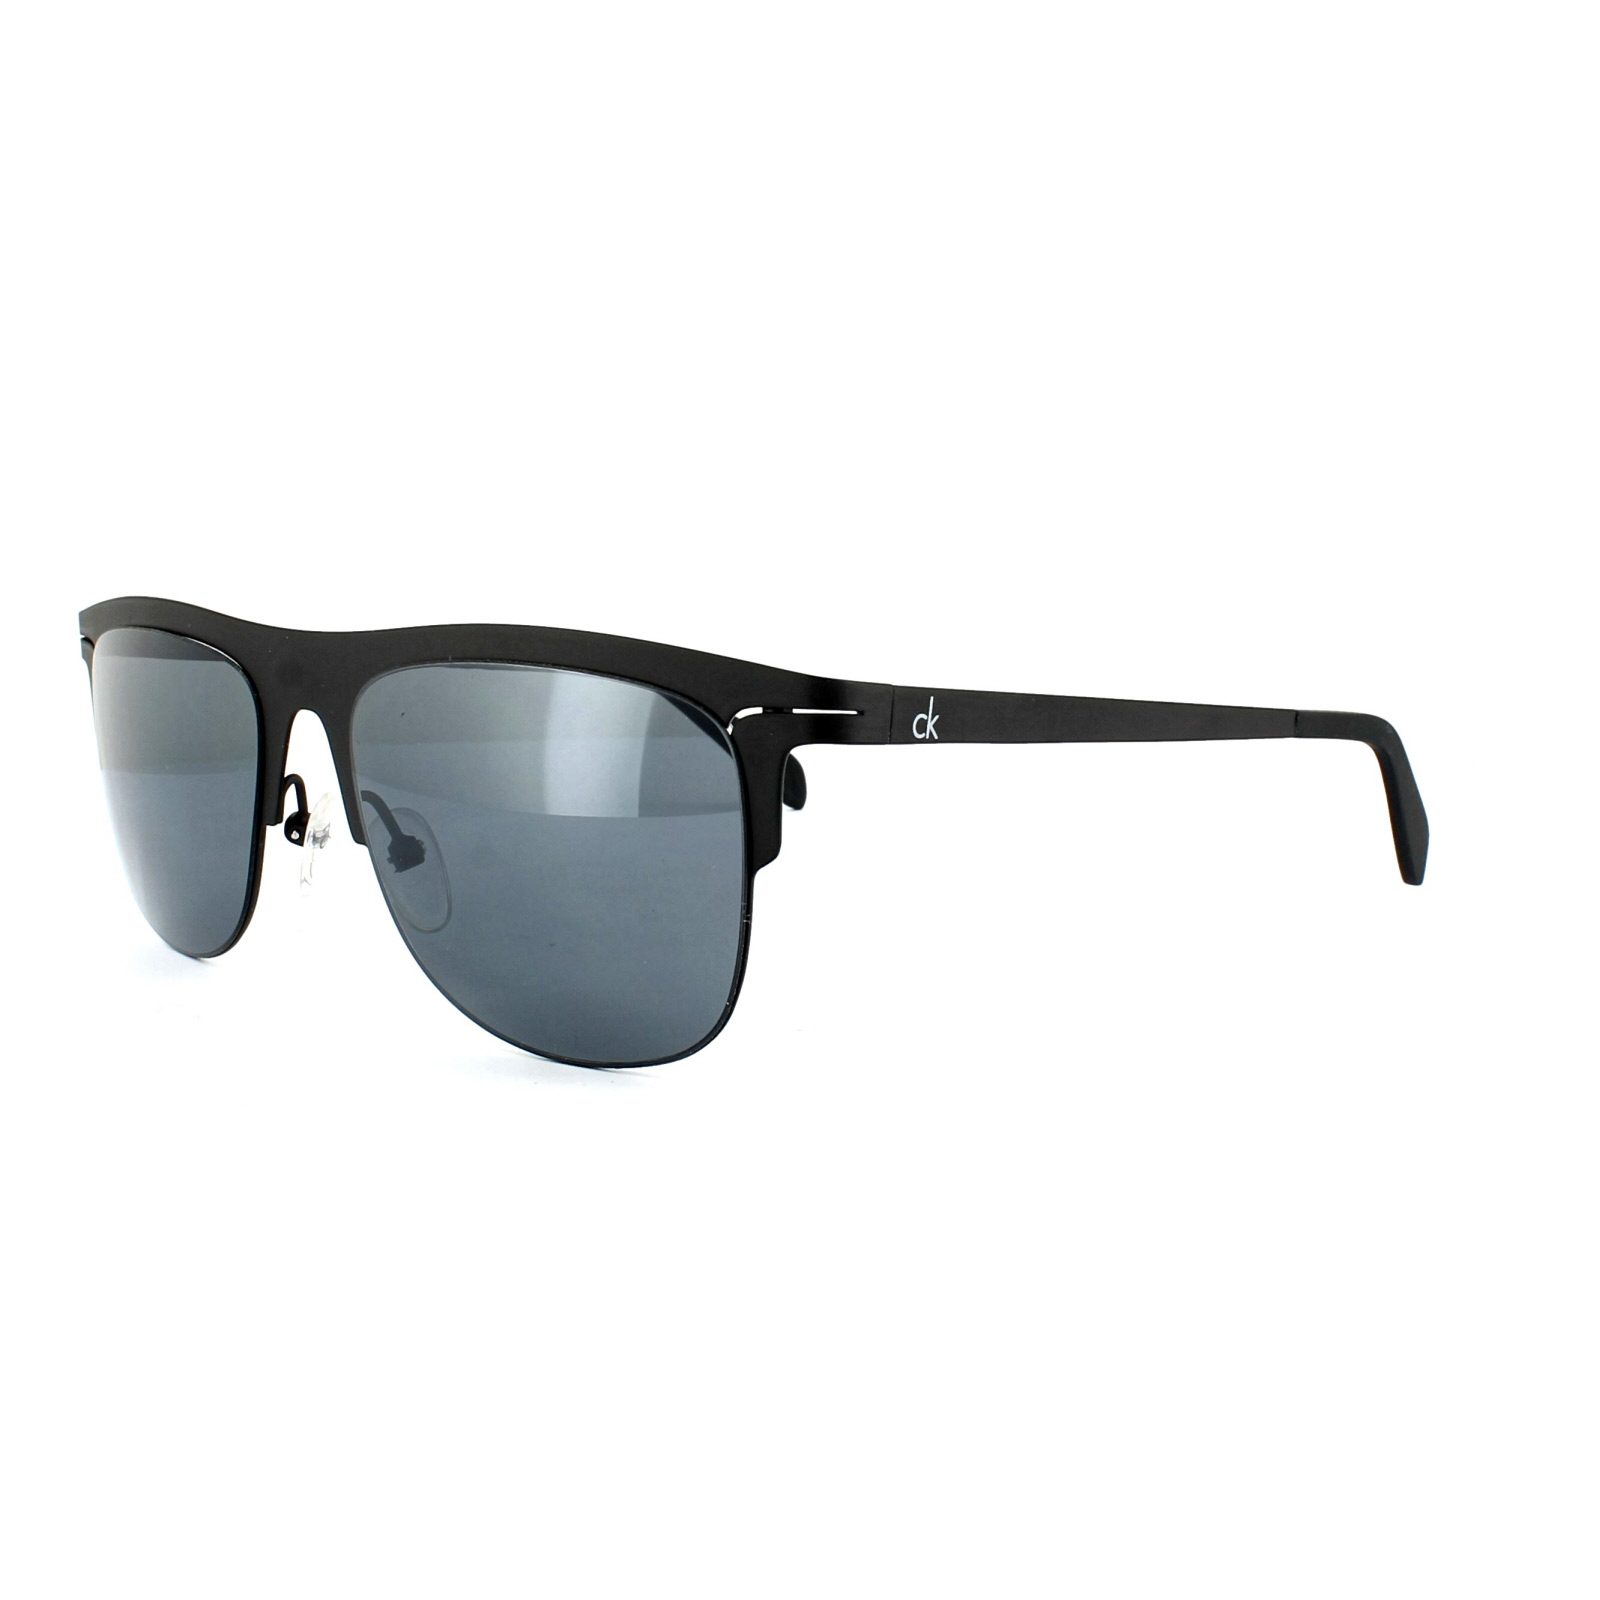 b0a4e9ab9c Cheap Calvin Klein 2141 Sunglasses - Discounted Sunglasses